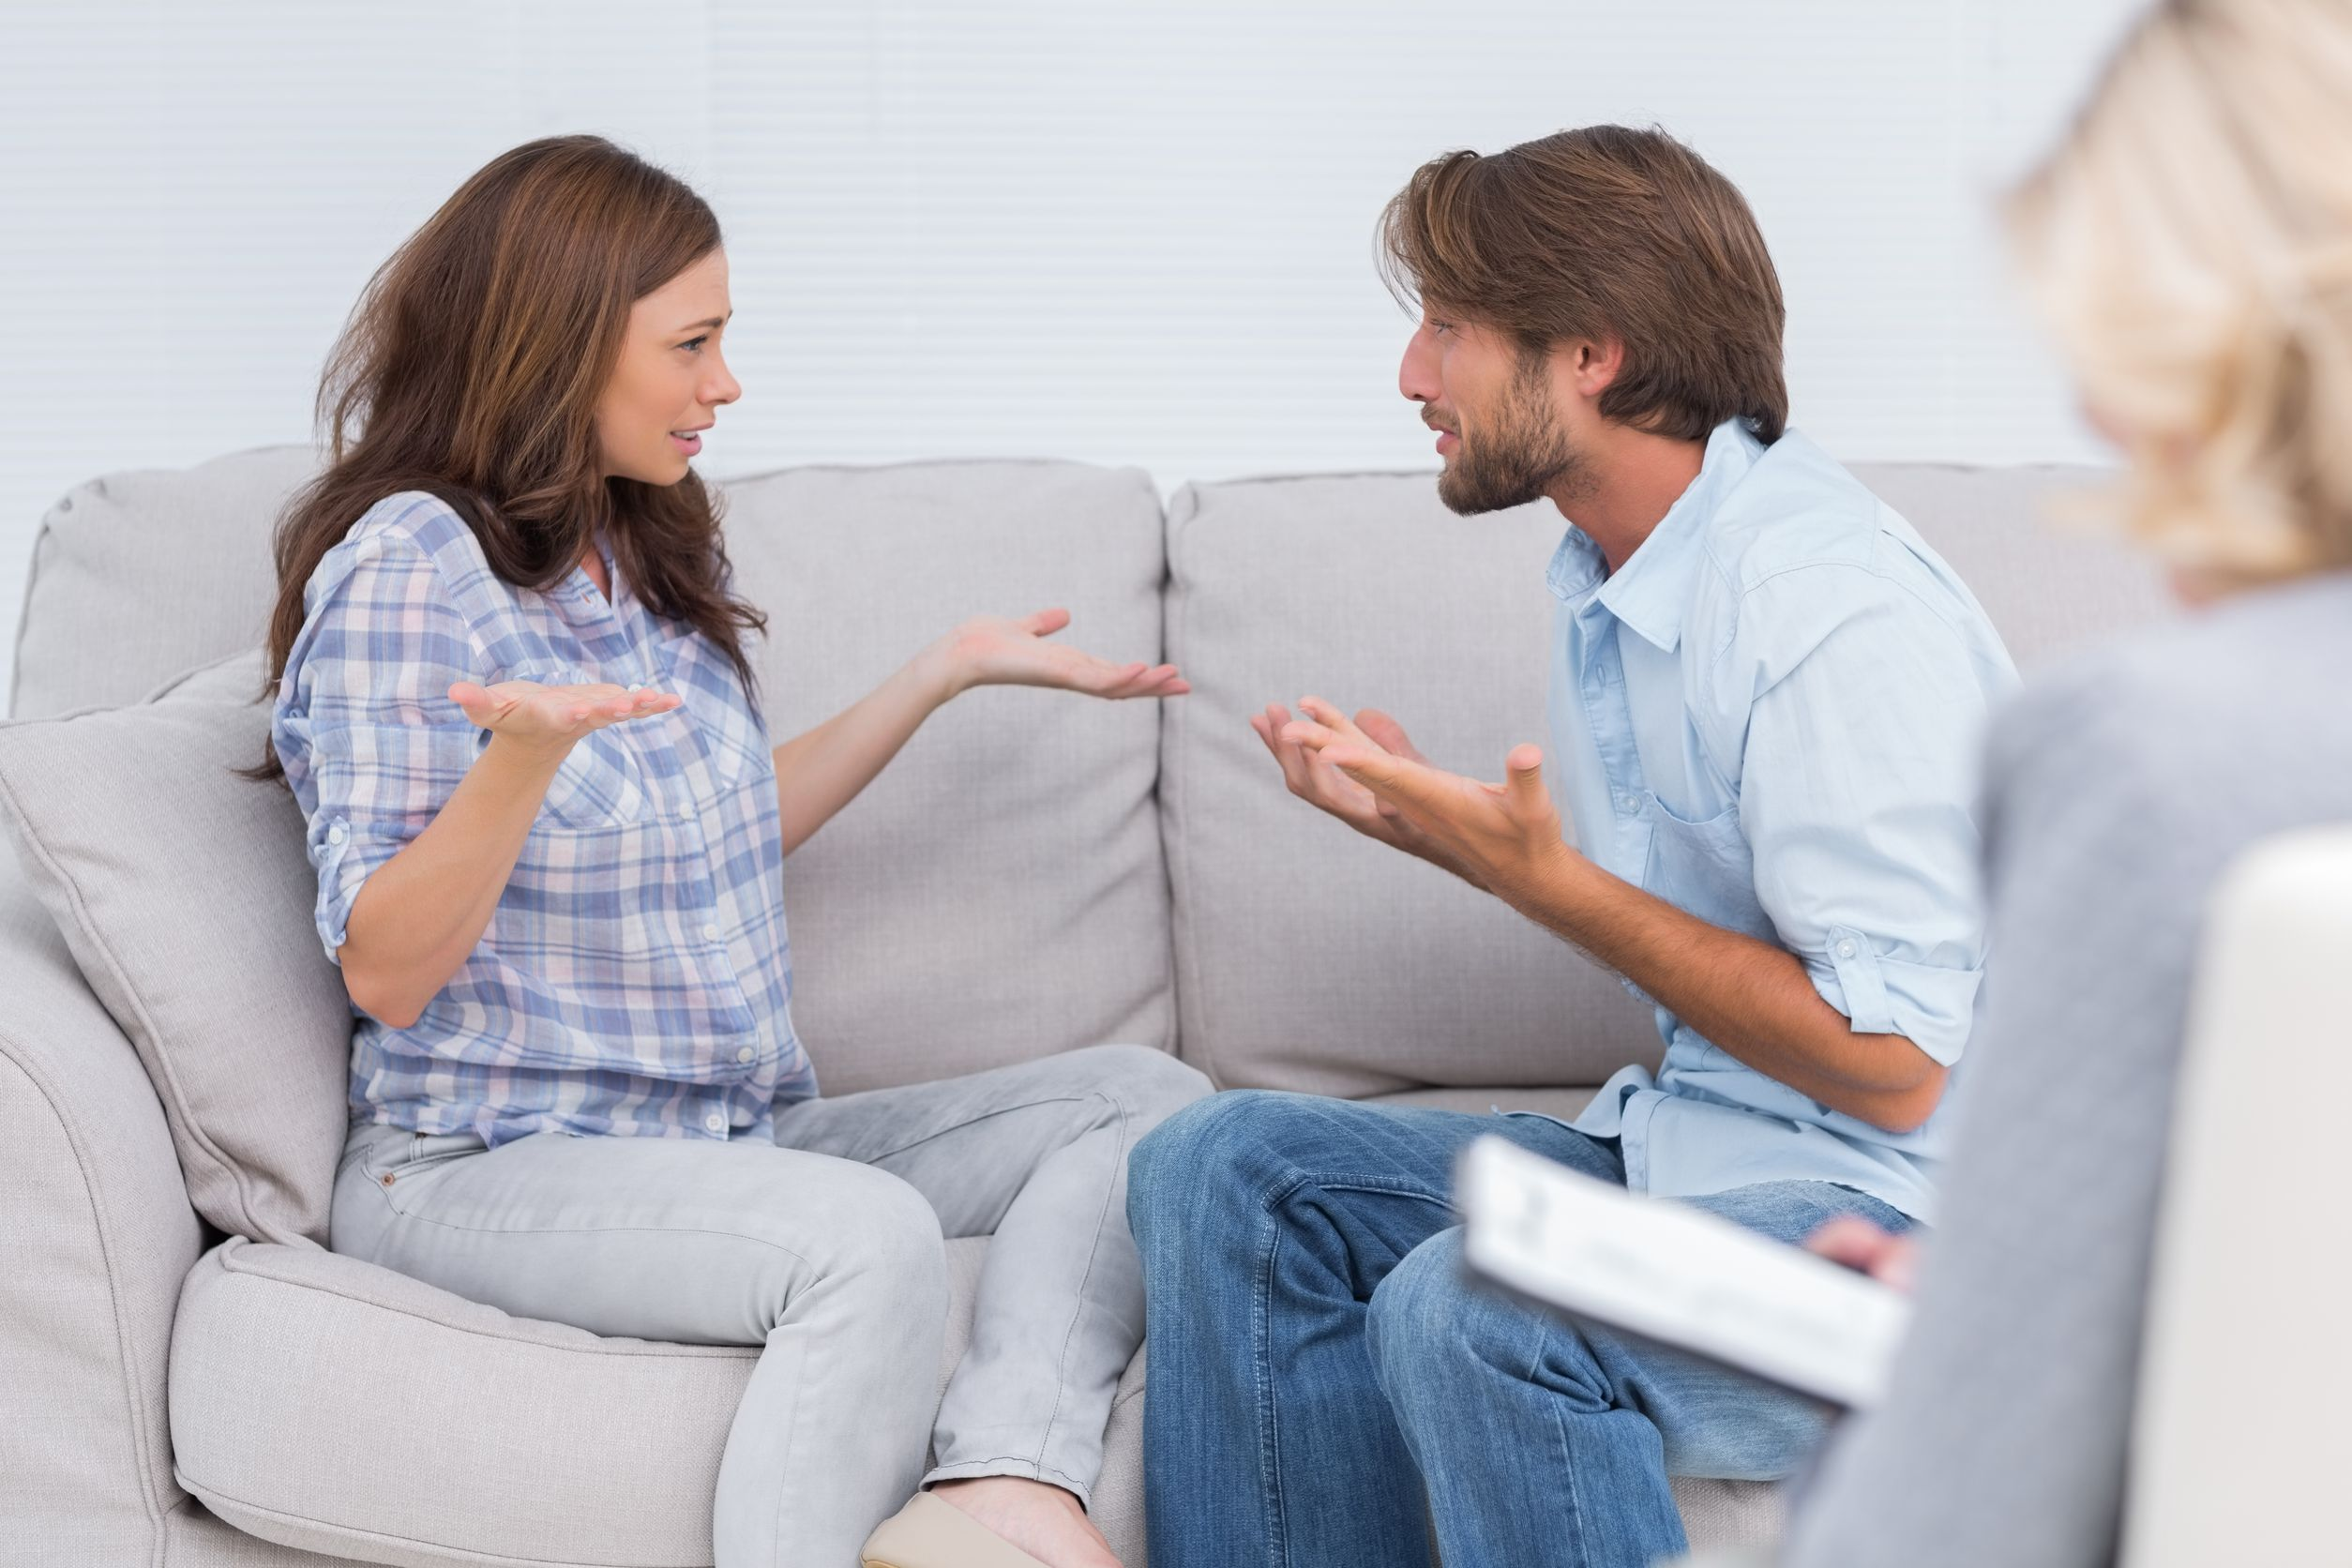 45 minute couples therapy can get you nowhere